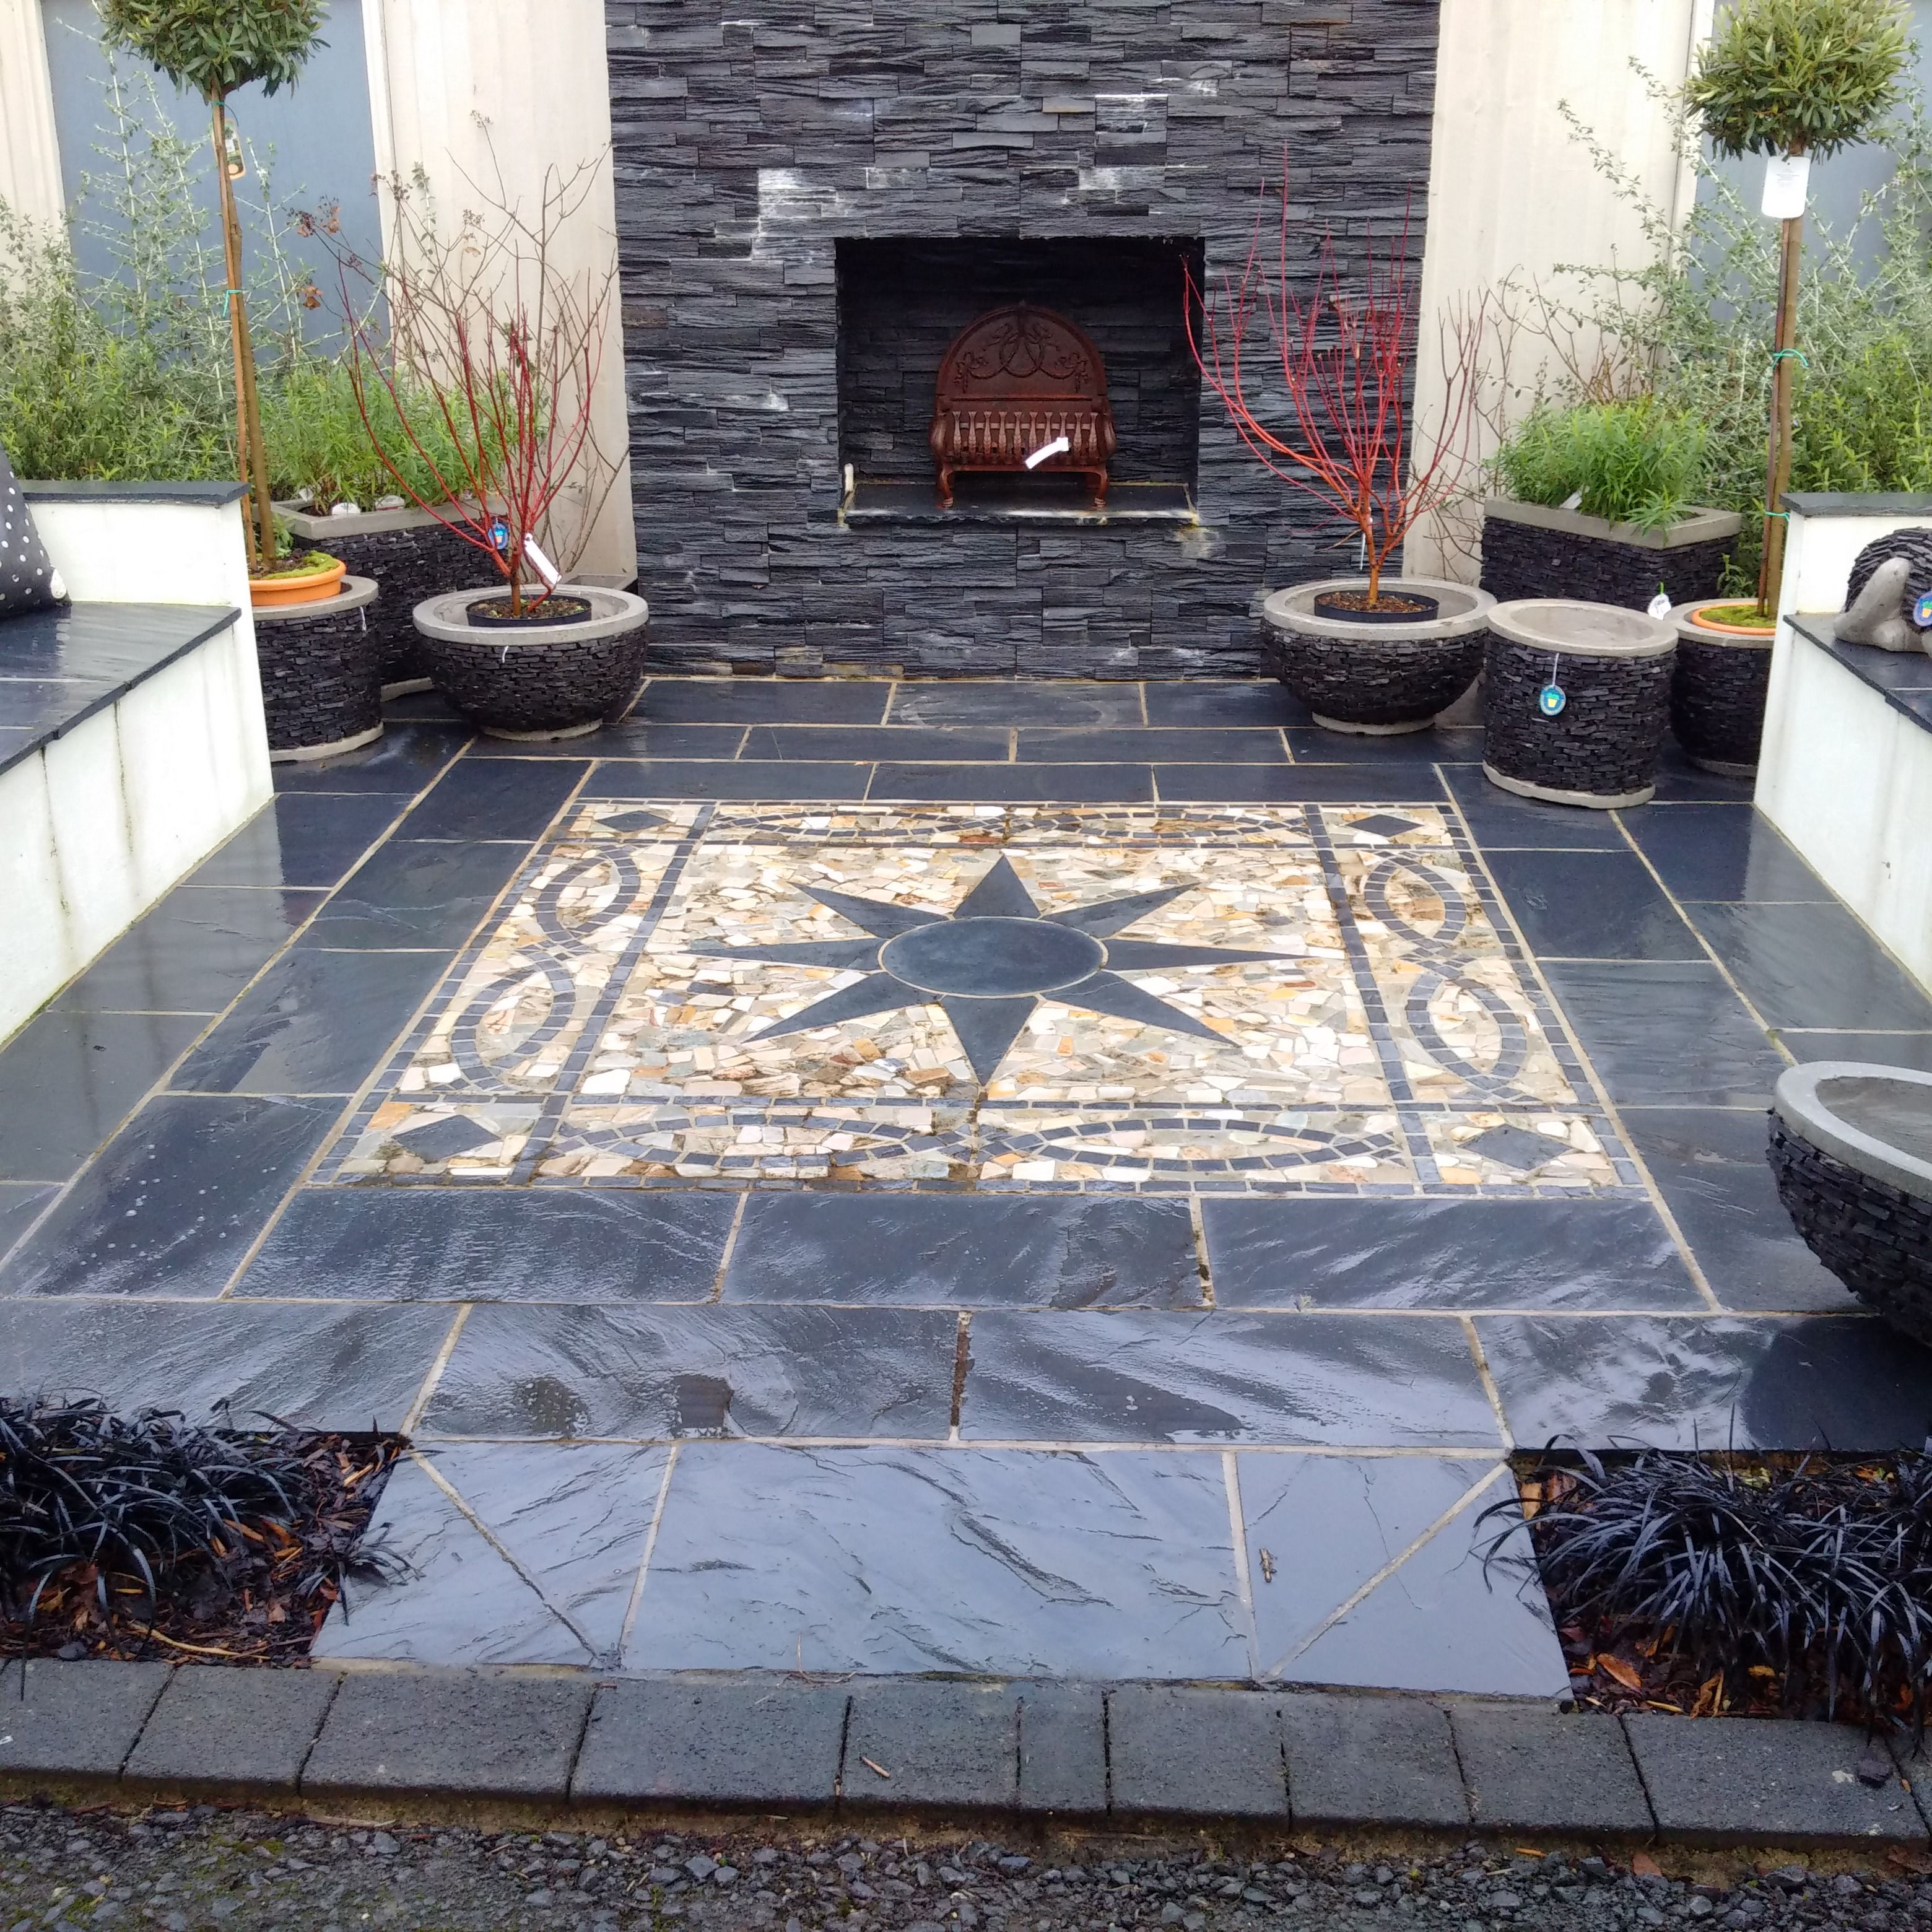 Star Mosaic And Black Slate Paving In One Of Our Garden Destination Centre Show Gardens In Hampshire Www Hambr Outdoor Living Areas Slate Paving Outdoor Decor